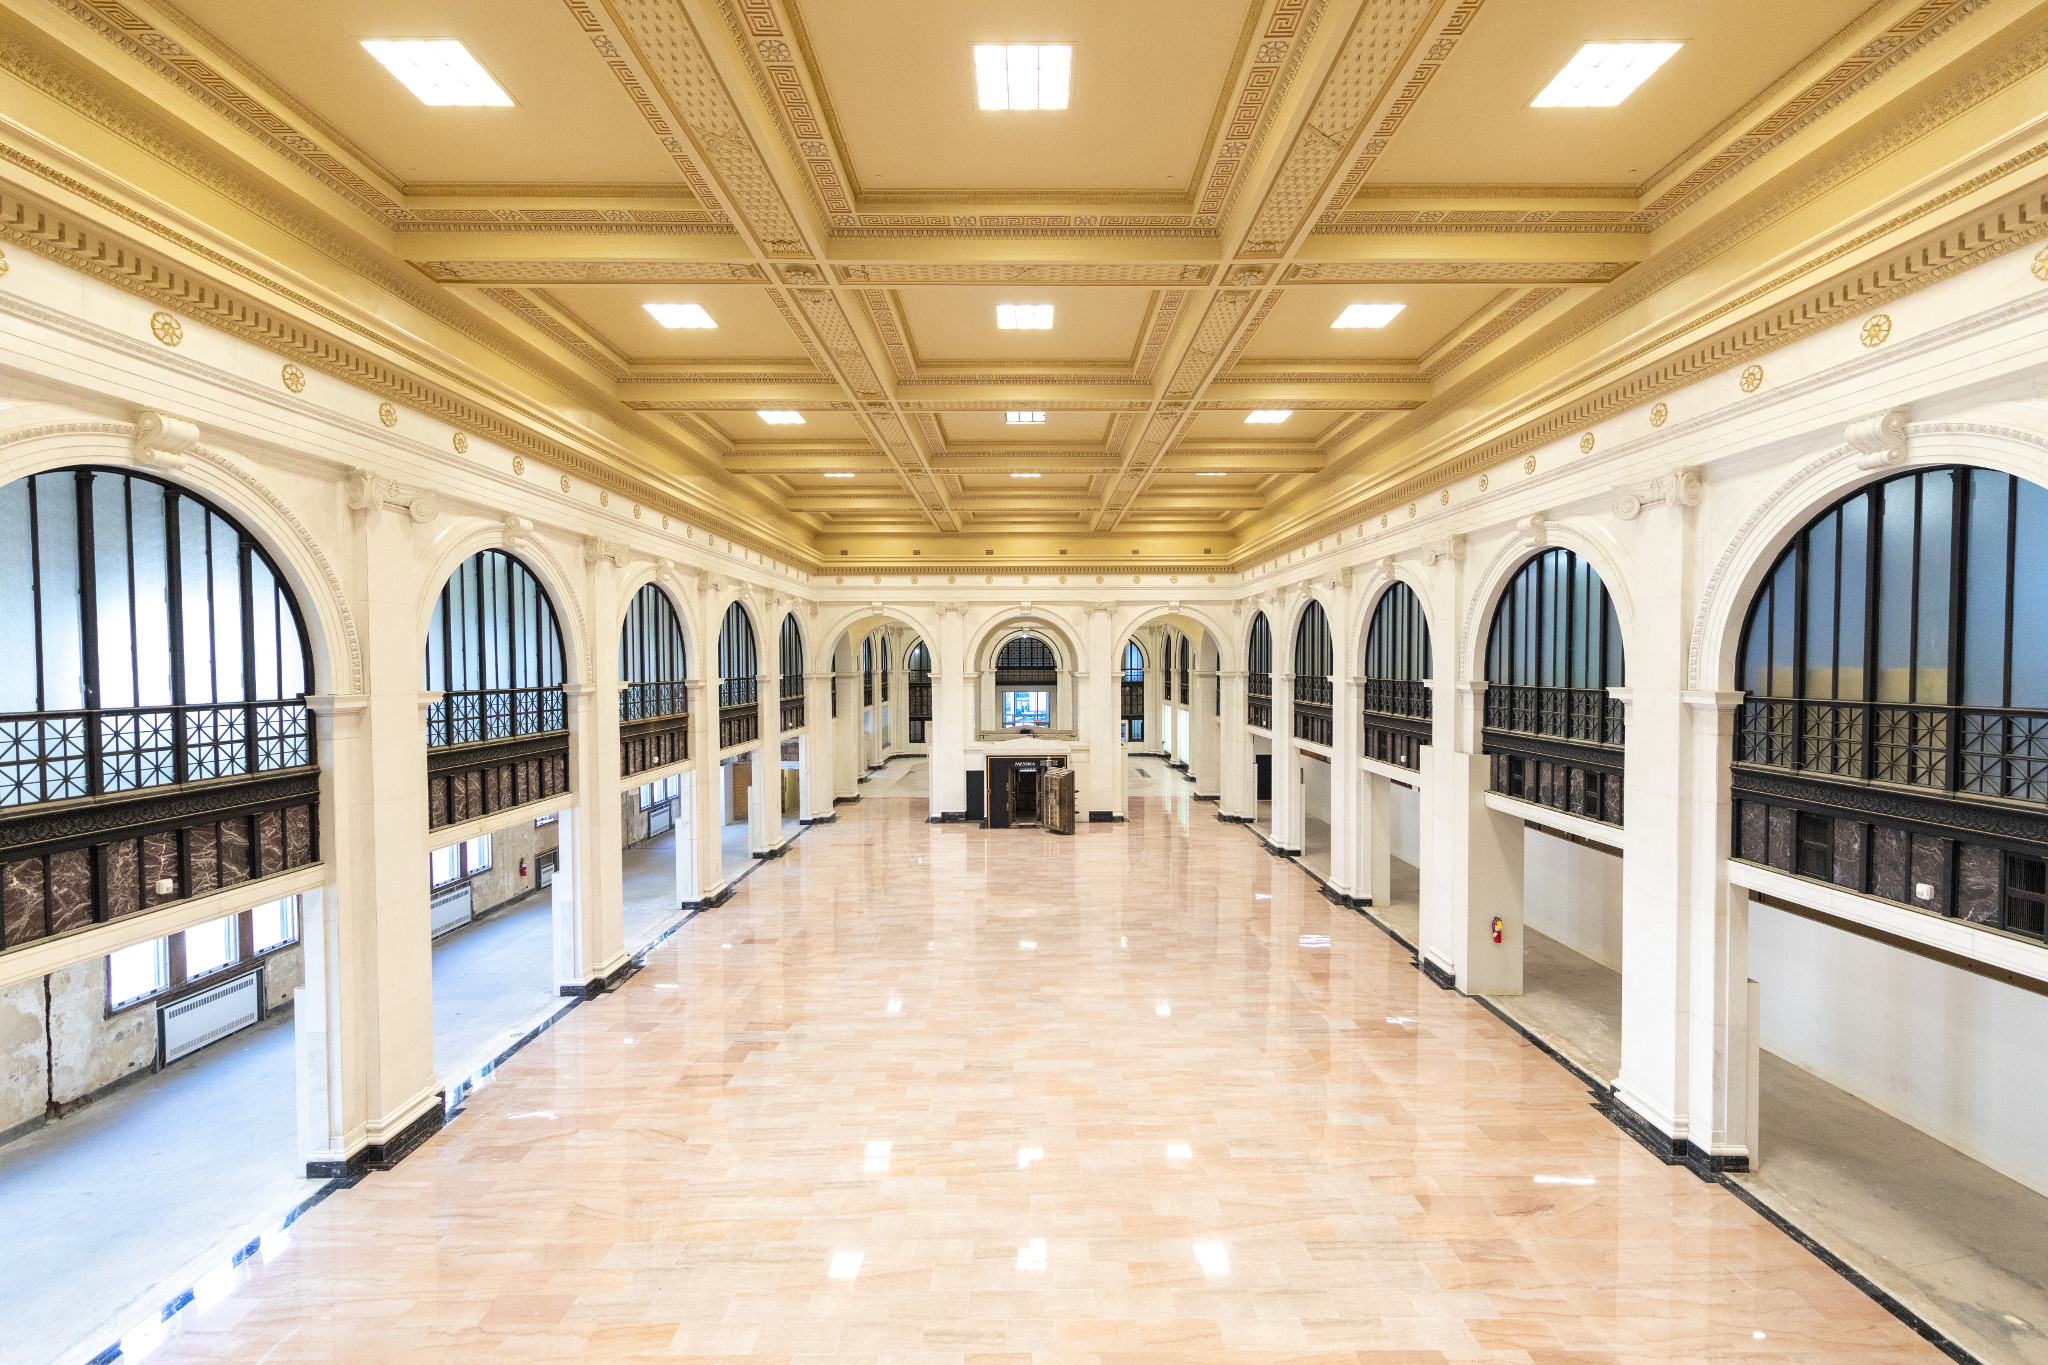 A long room with multiple arches on either side and a bank vault in the middle. There's a gold coffered ceiling.